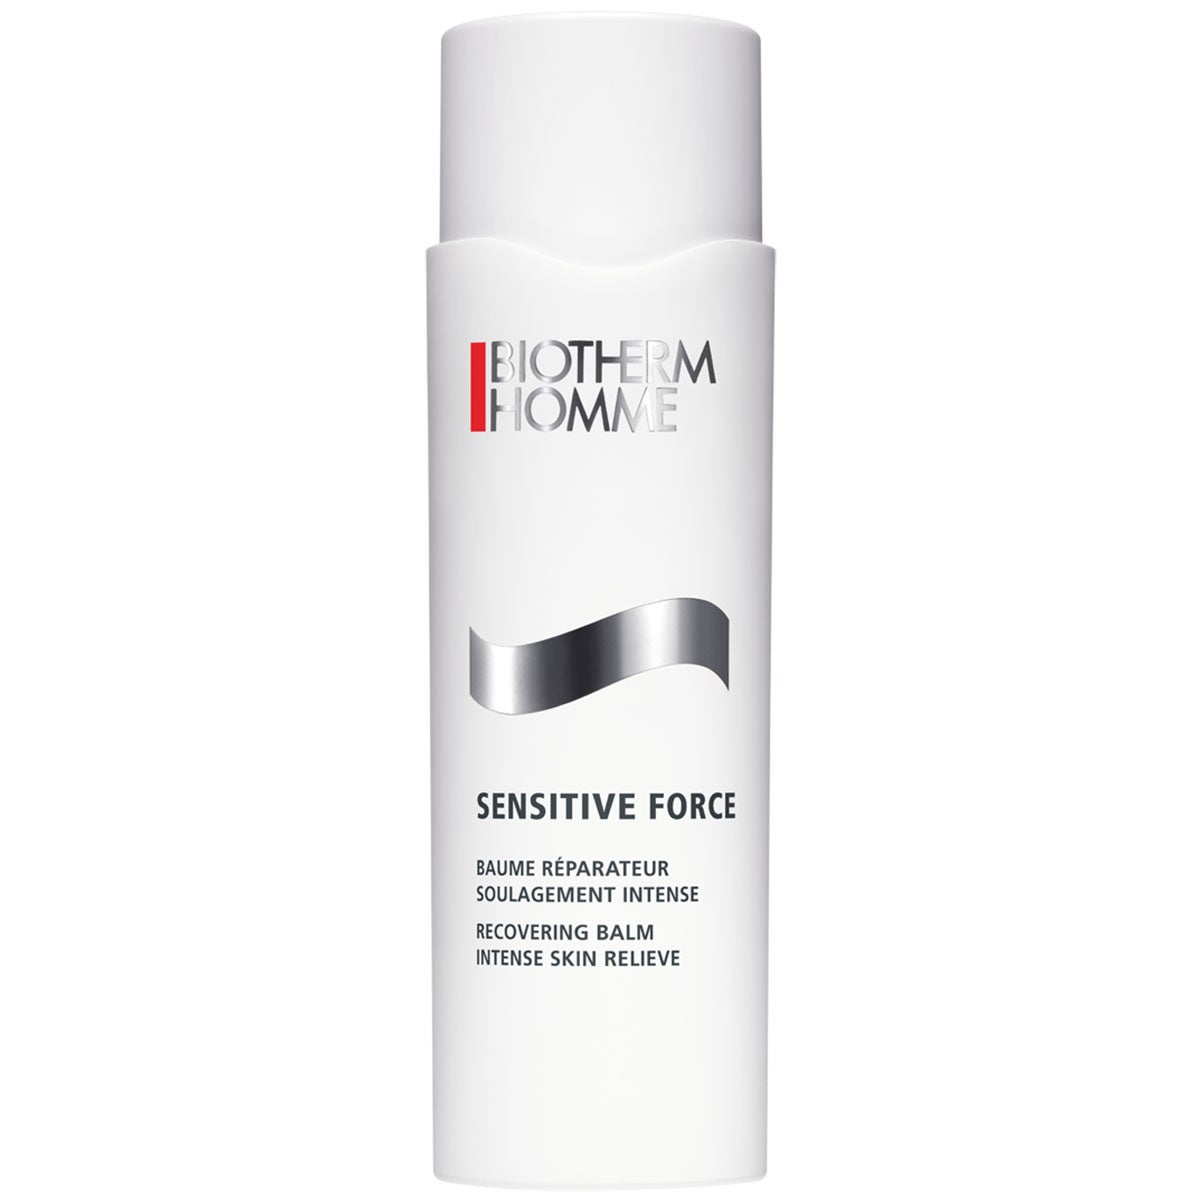 Biotherm Sensitive Force Recovery Balm